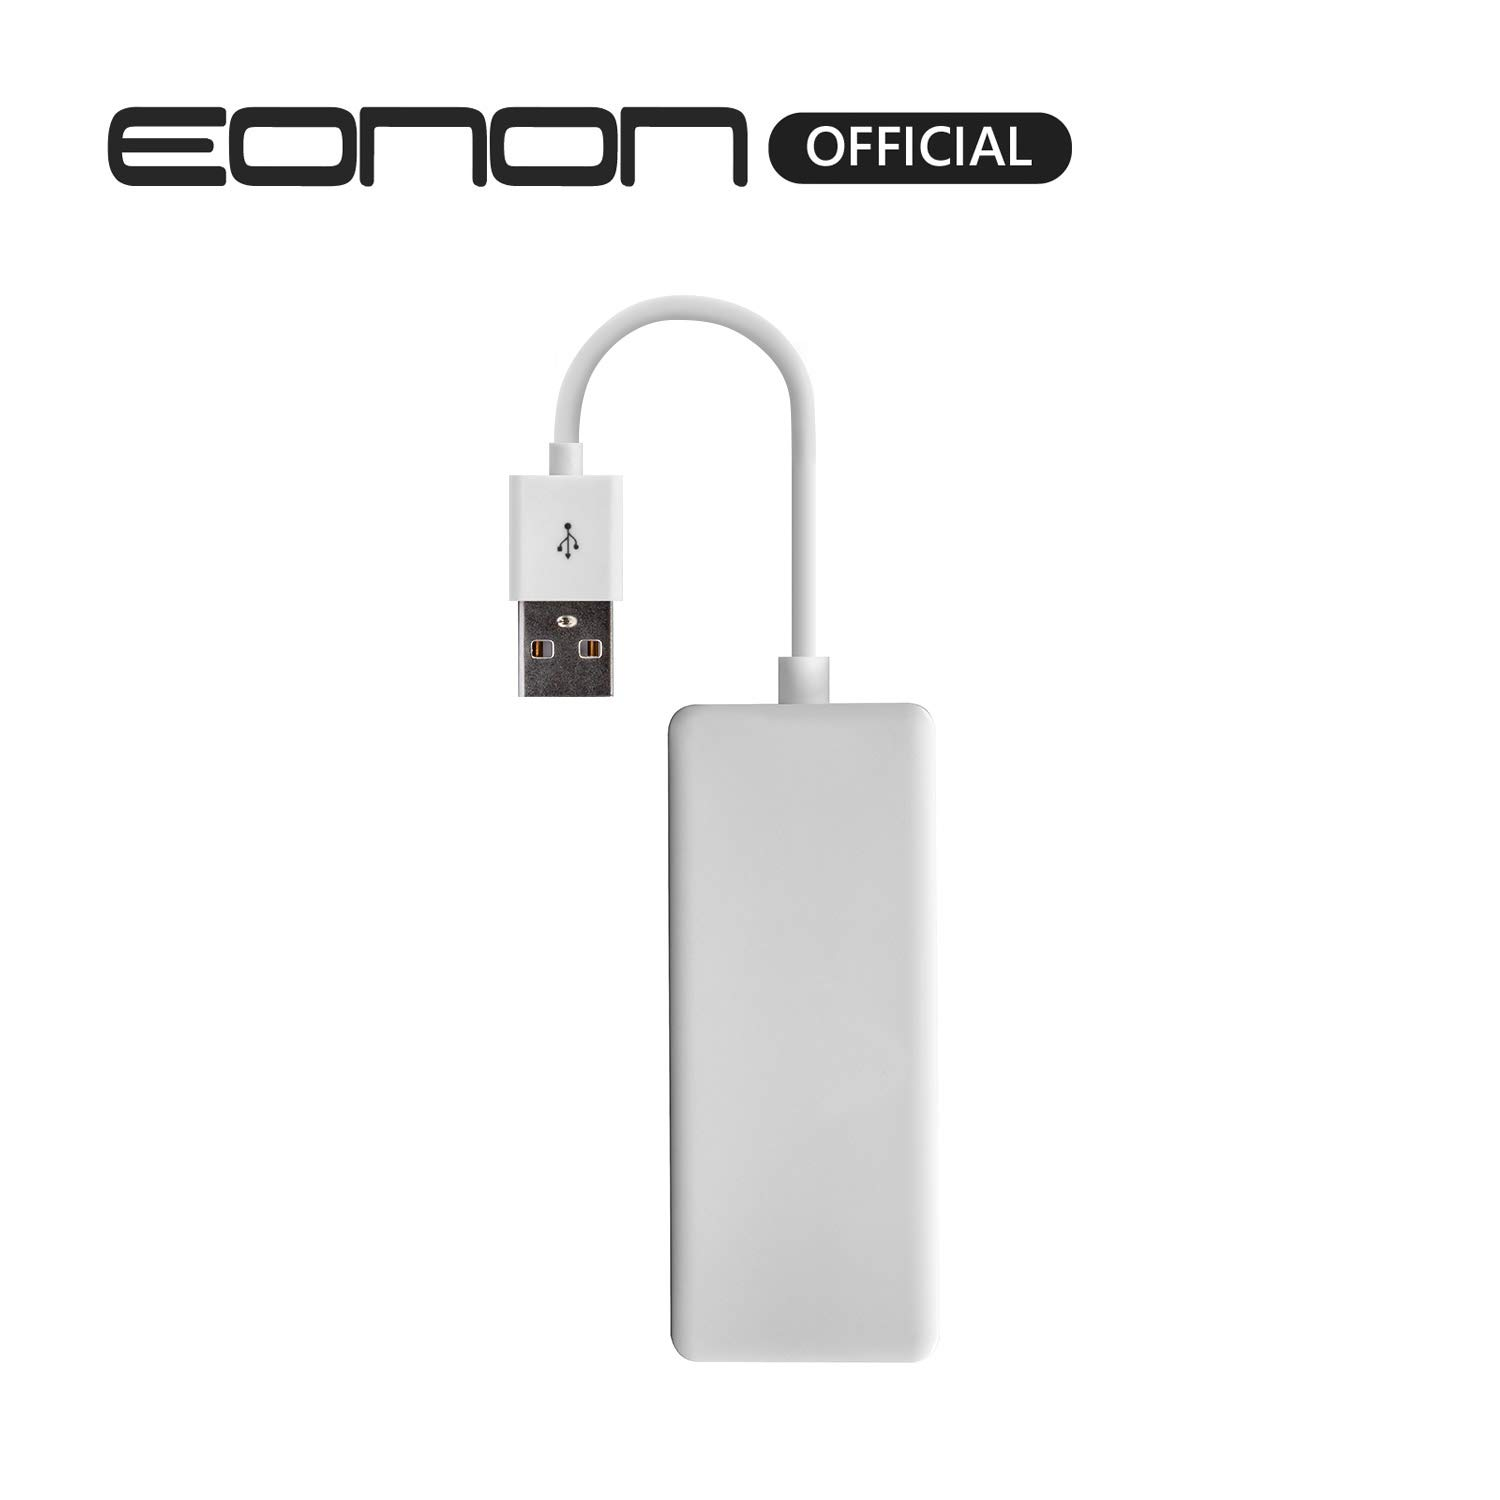 Eonon A0585 Android Auto and Car Play Autoplay Dongle for Eonon Android 8.0/8.1/9.0 Car Radio by Eonon